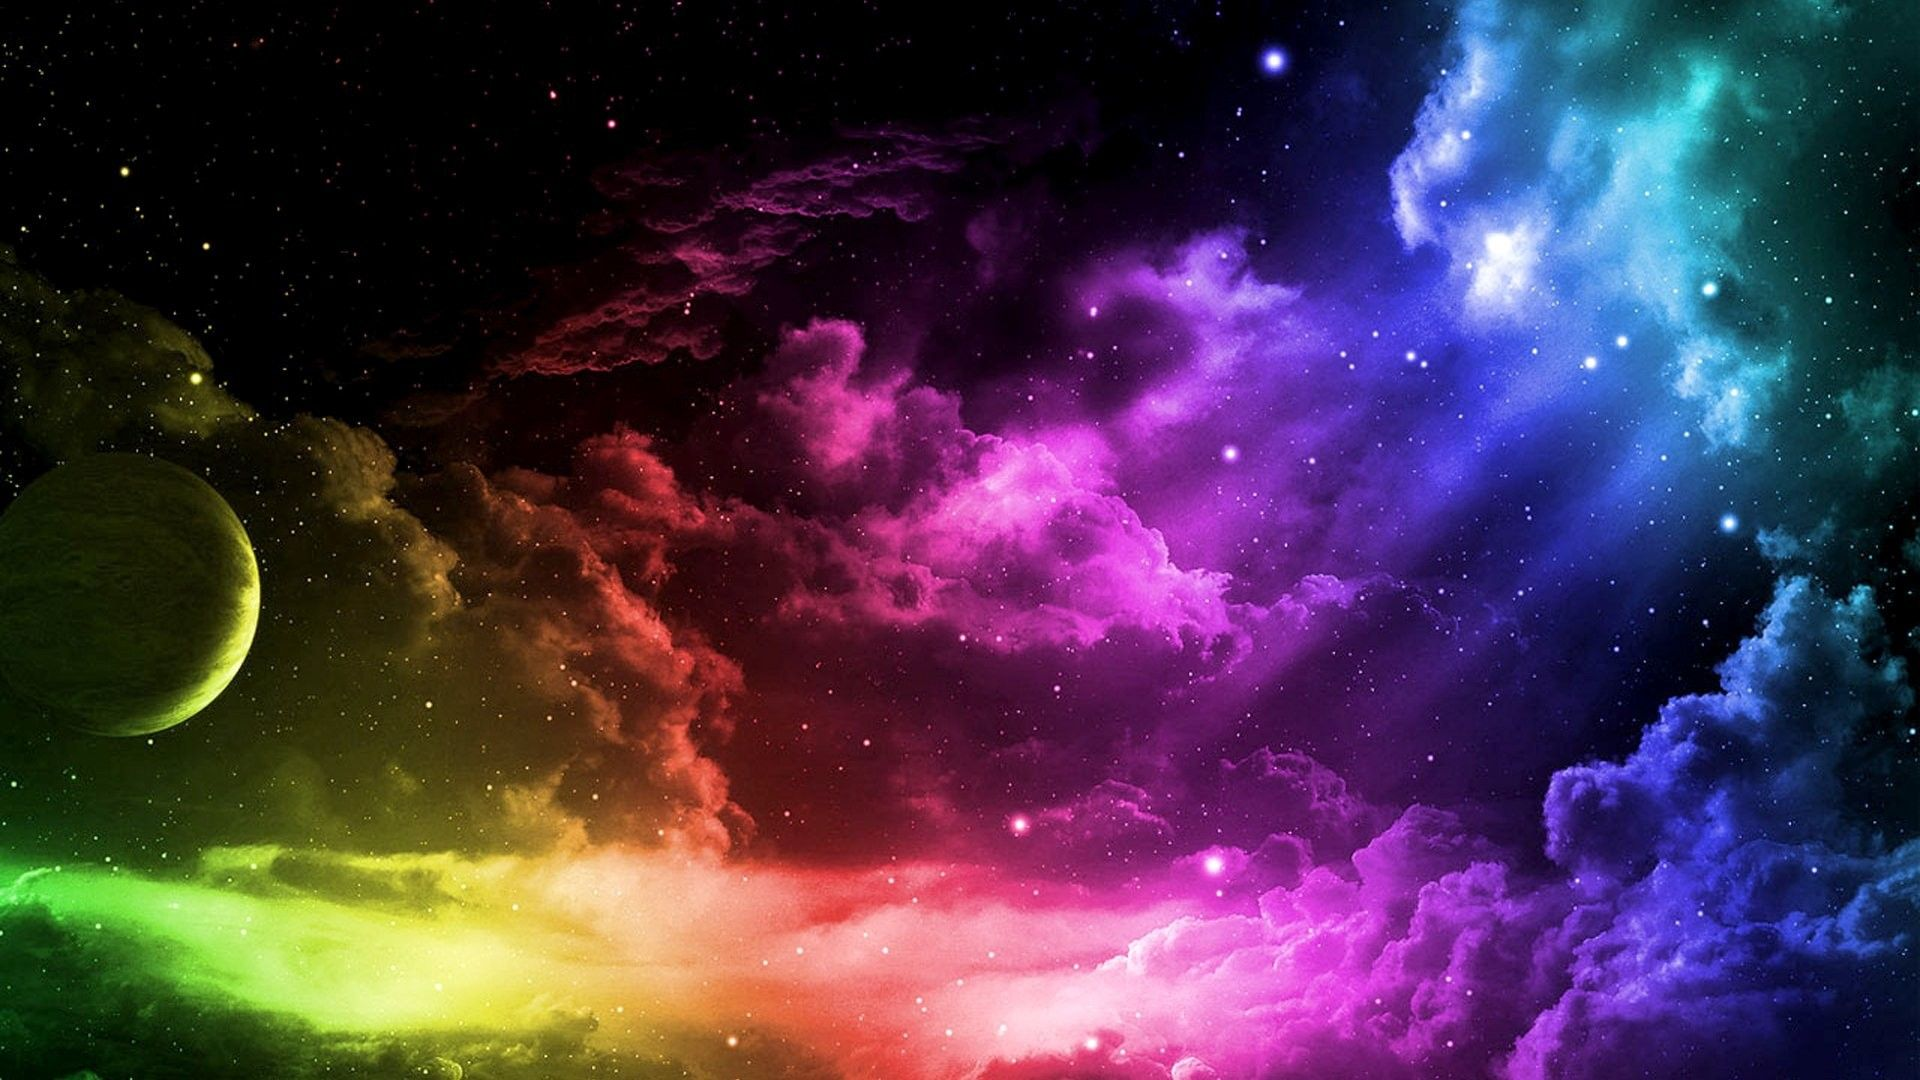 Rainbow Space 799423 1920x1080 Nature wallpaper, Cross